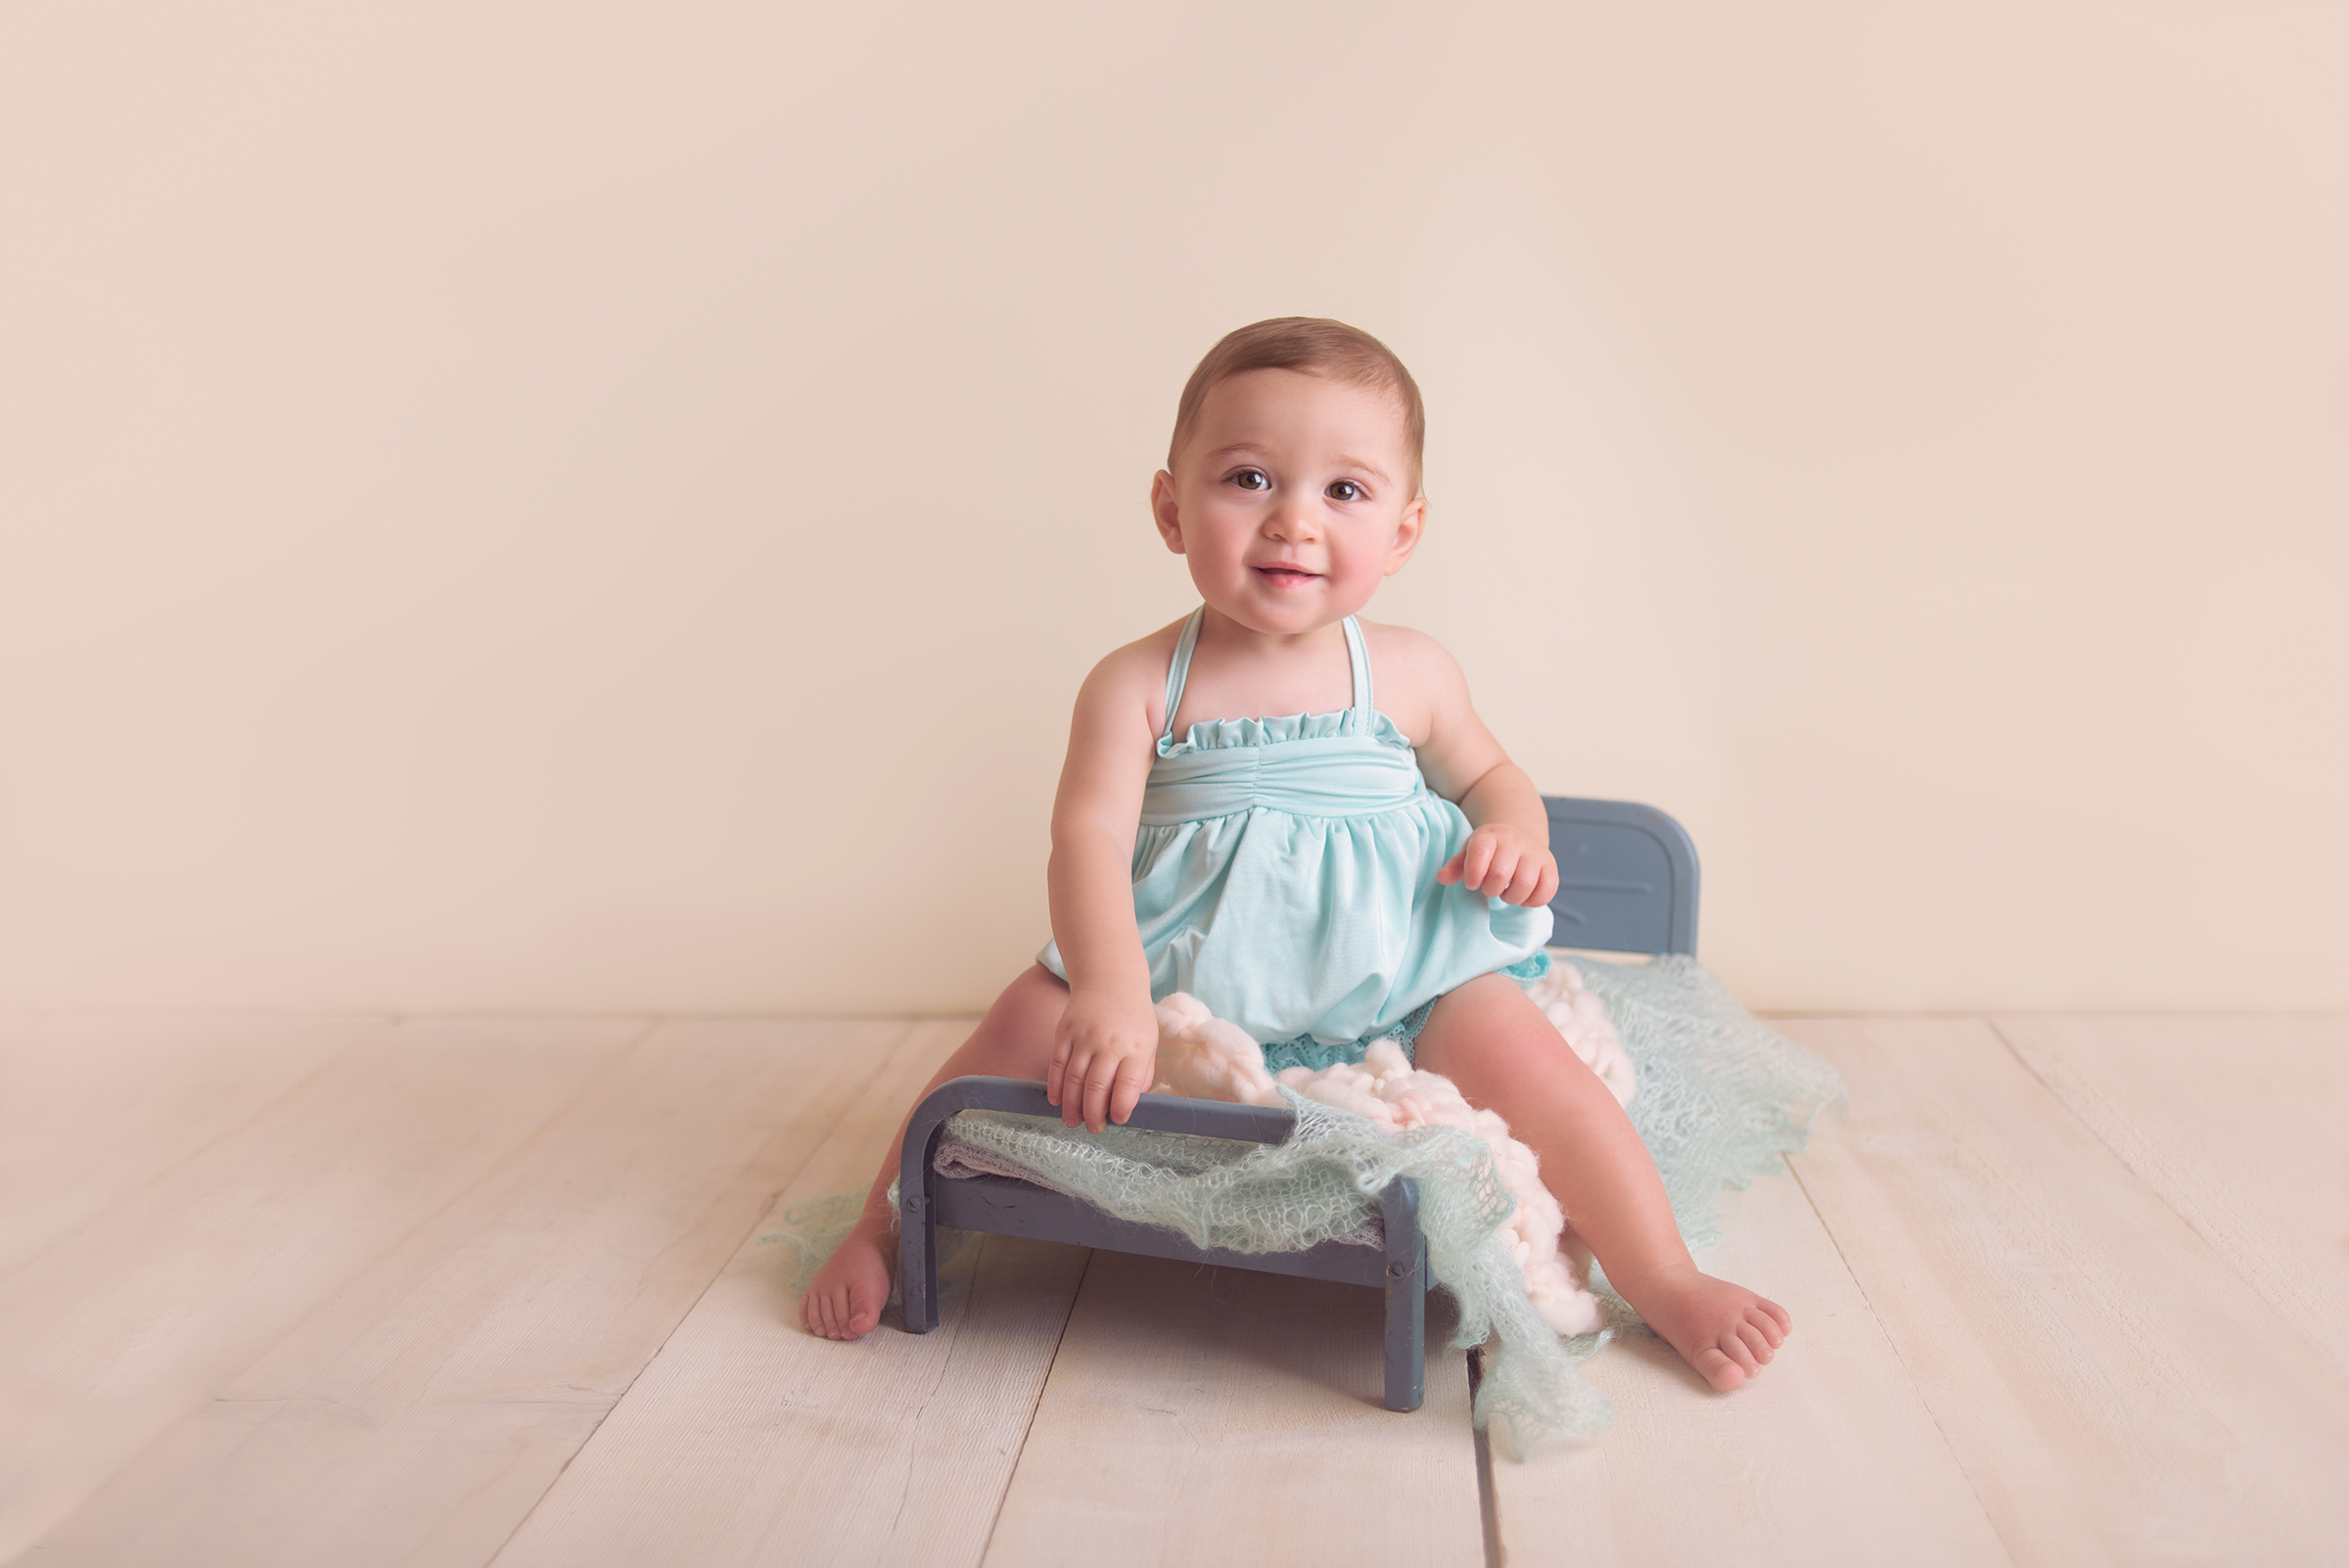 Baby girl sitting on on vintage doll bed for one year old portrait photography session in studio San Diego